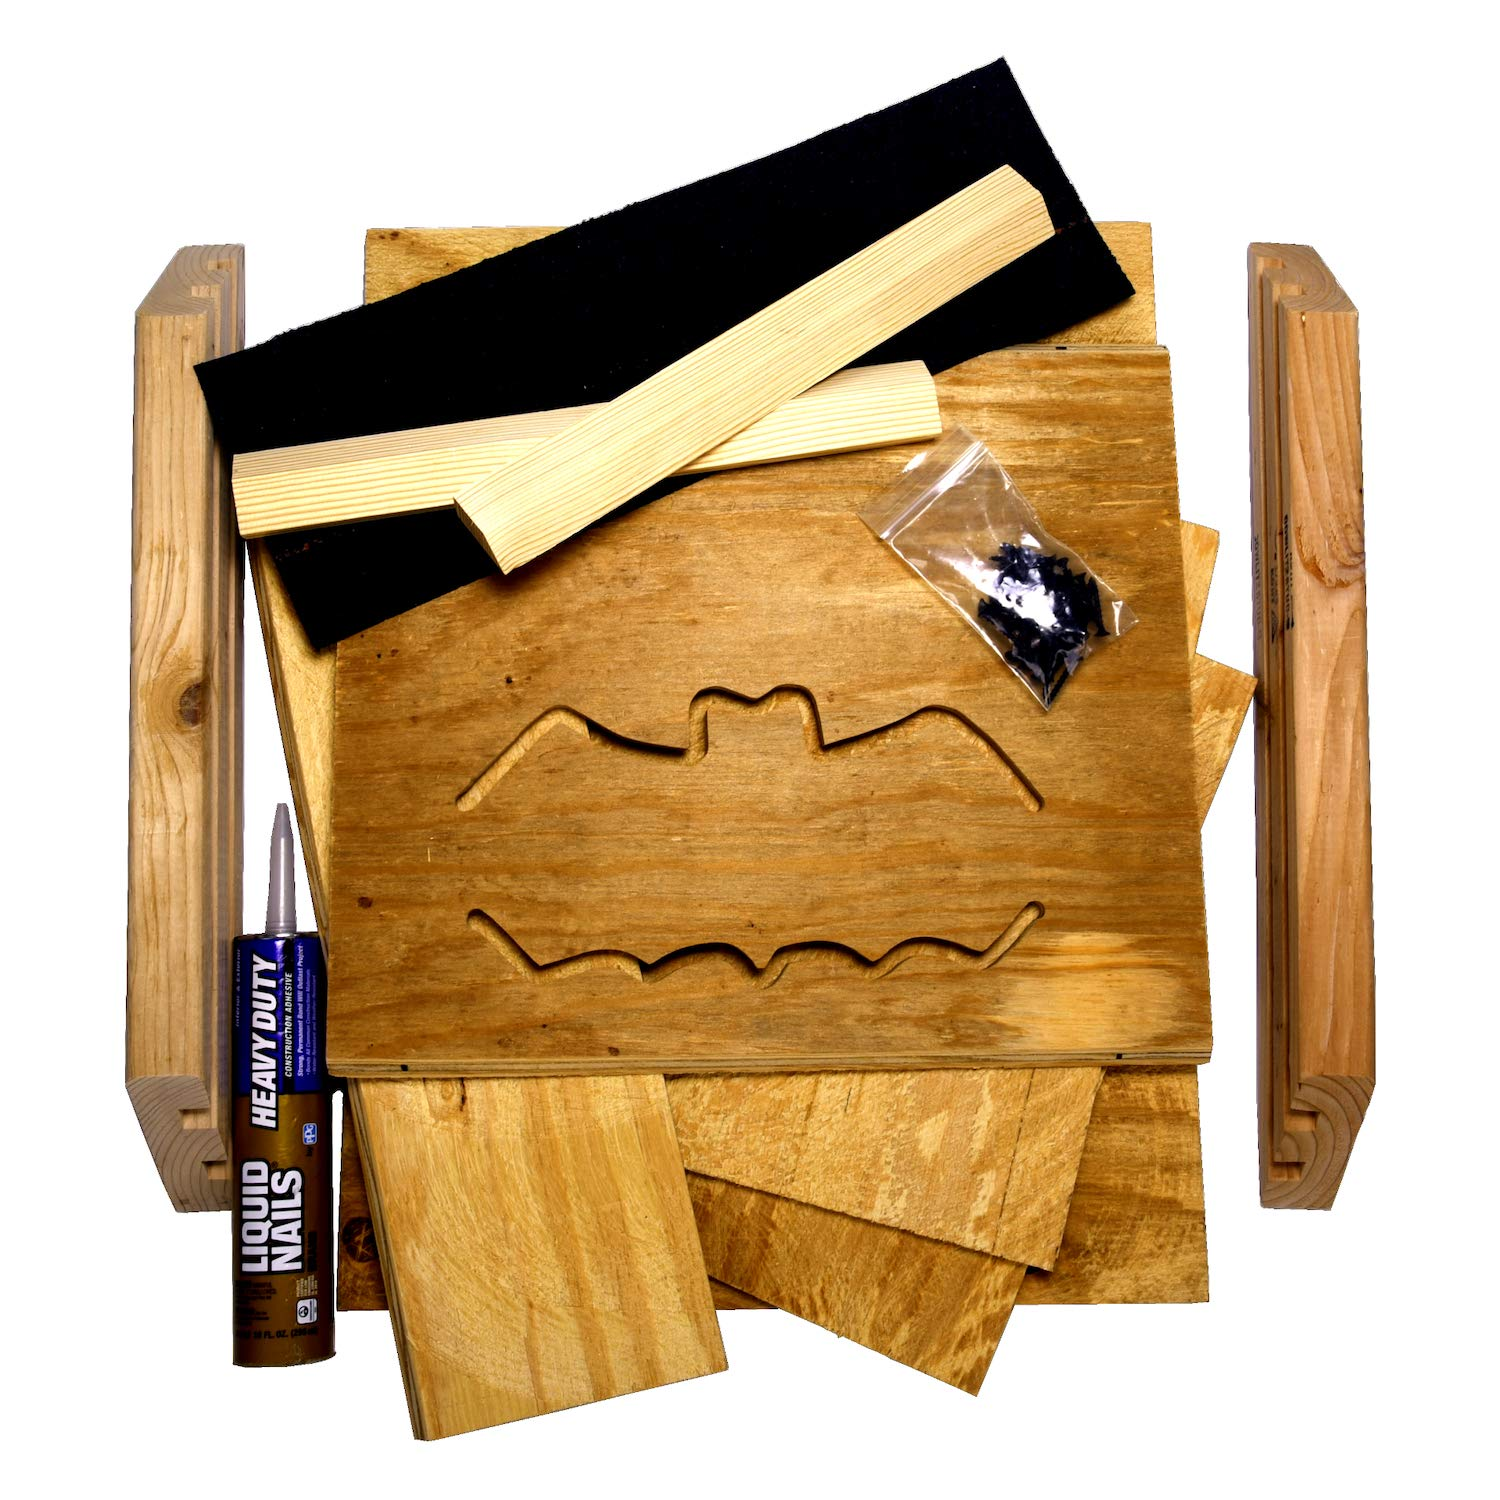 Bat Conservation and Management 3-Chamber Bat House Kit | DIY | Made in USA